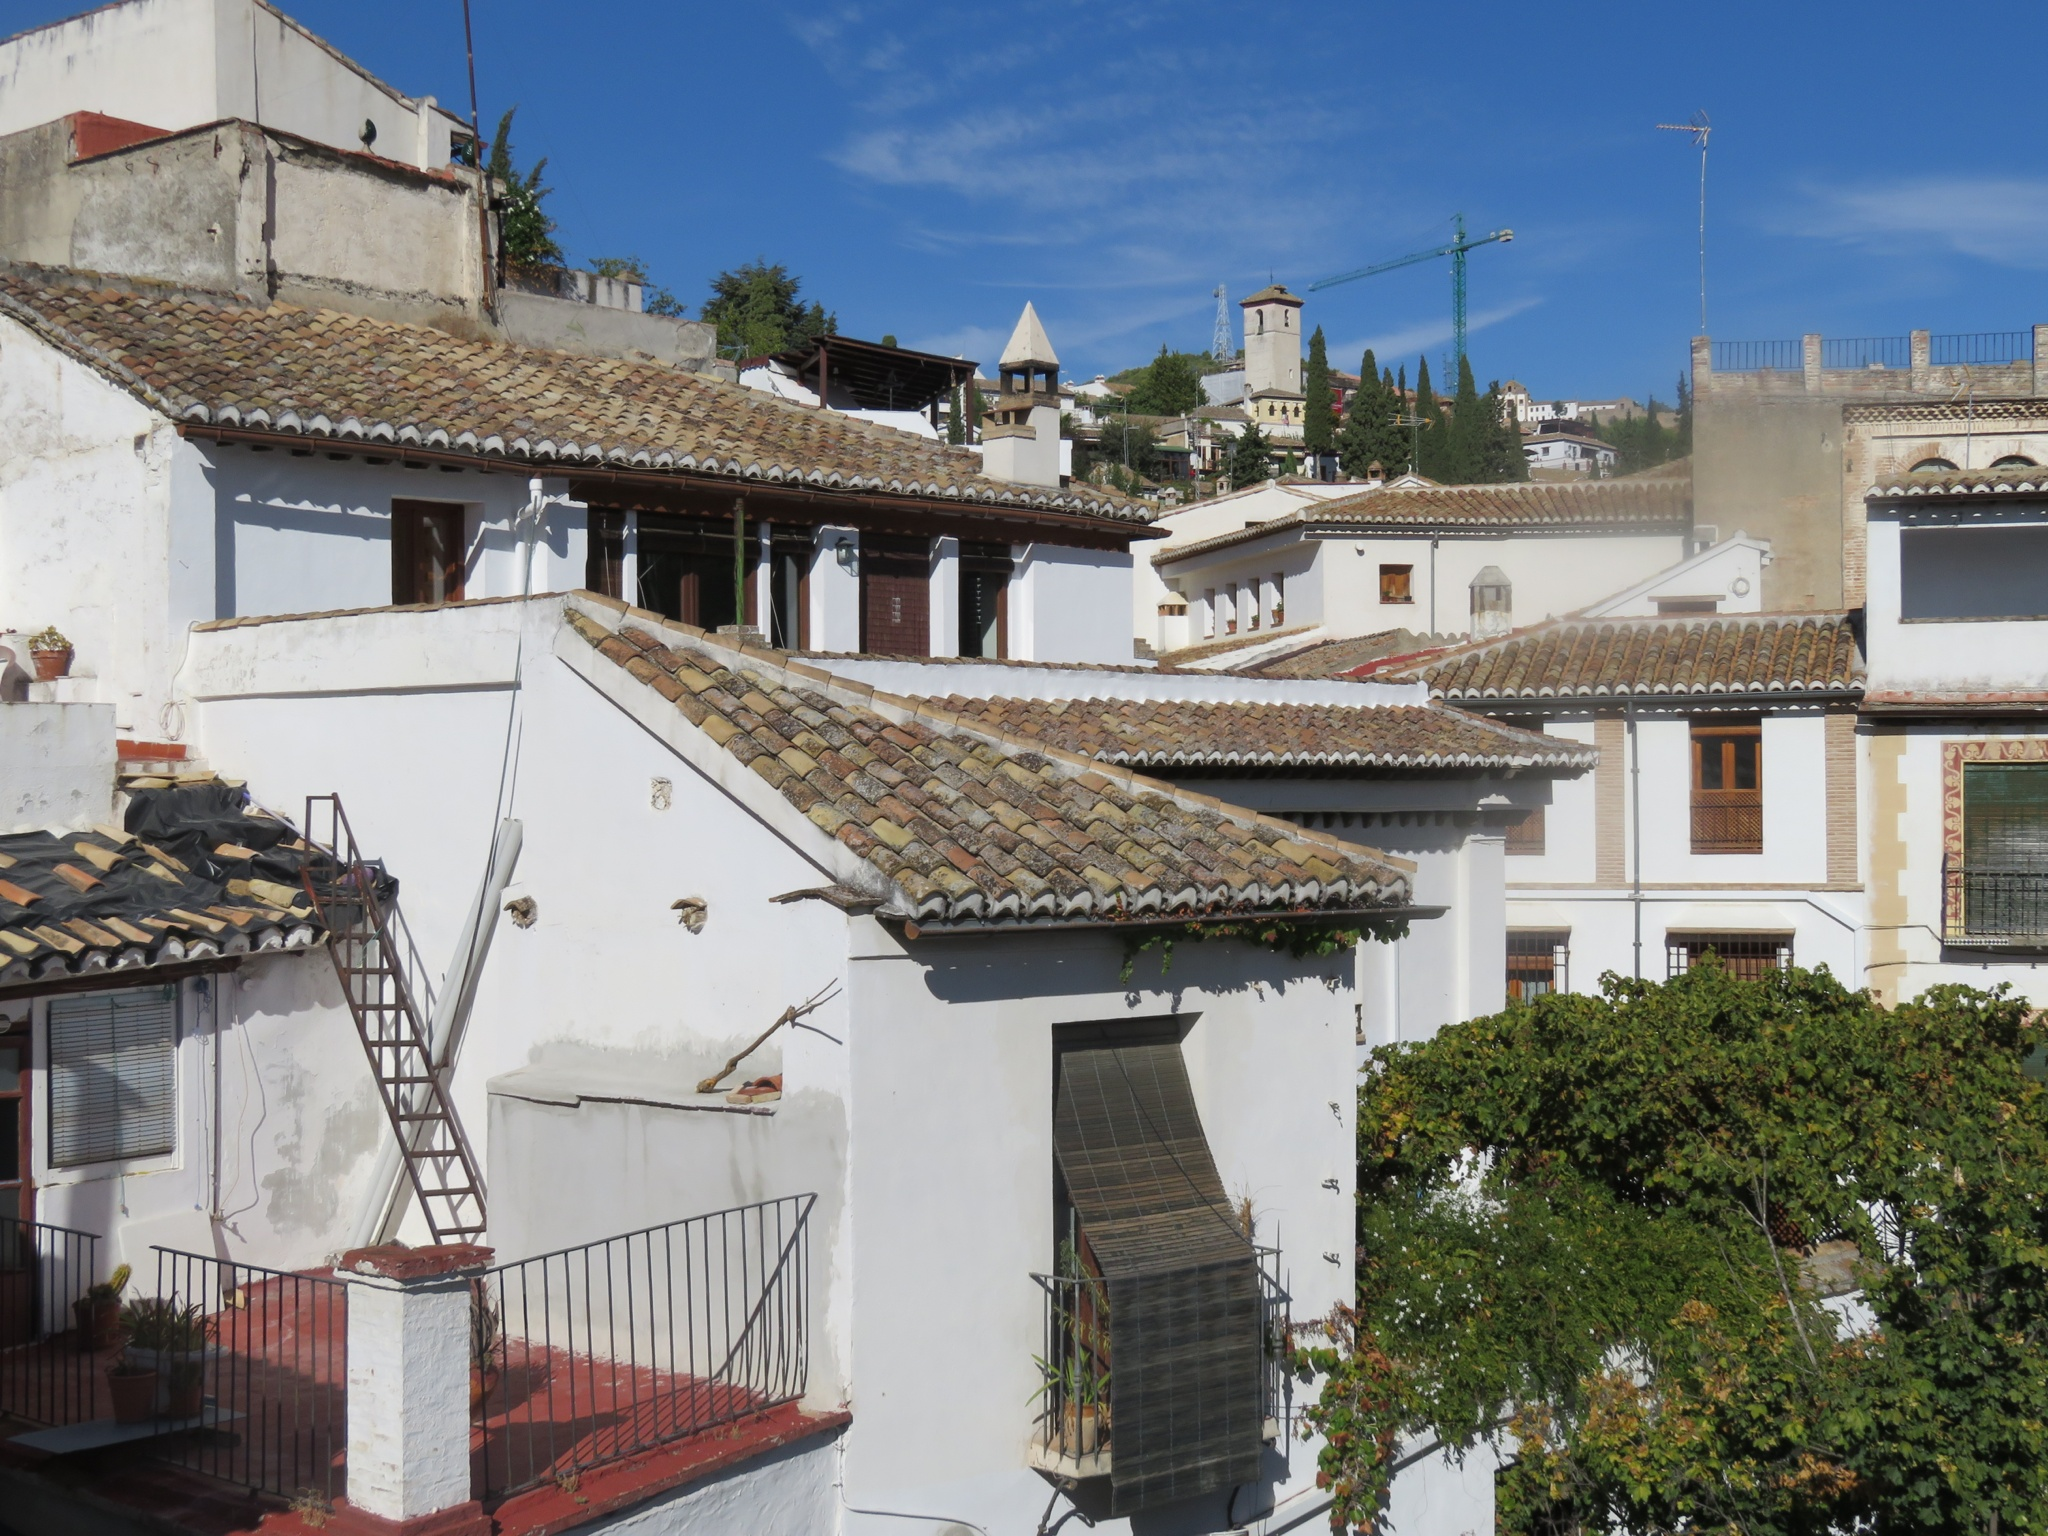 Rooftops of the Moorish District - the Albayzin - dating back prior to the Reconquista of 1492.  There are 20 churches in the distract, each one built on the site of a former mosque after the Reconquista/Inquisition.